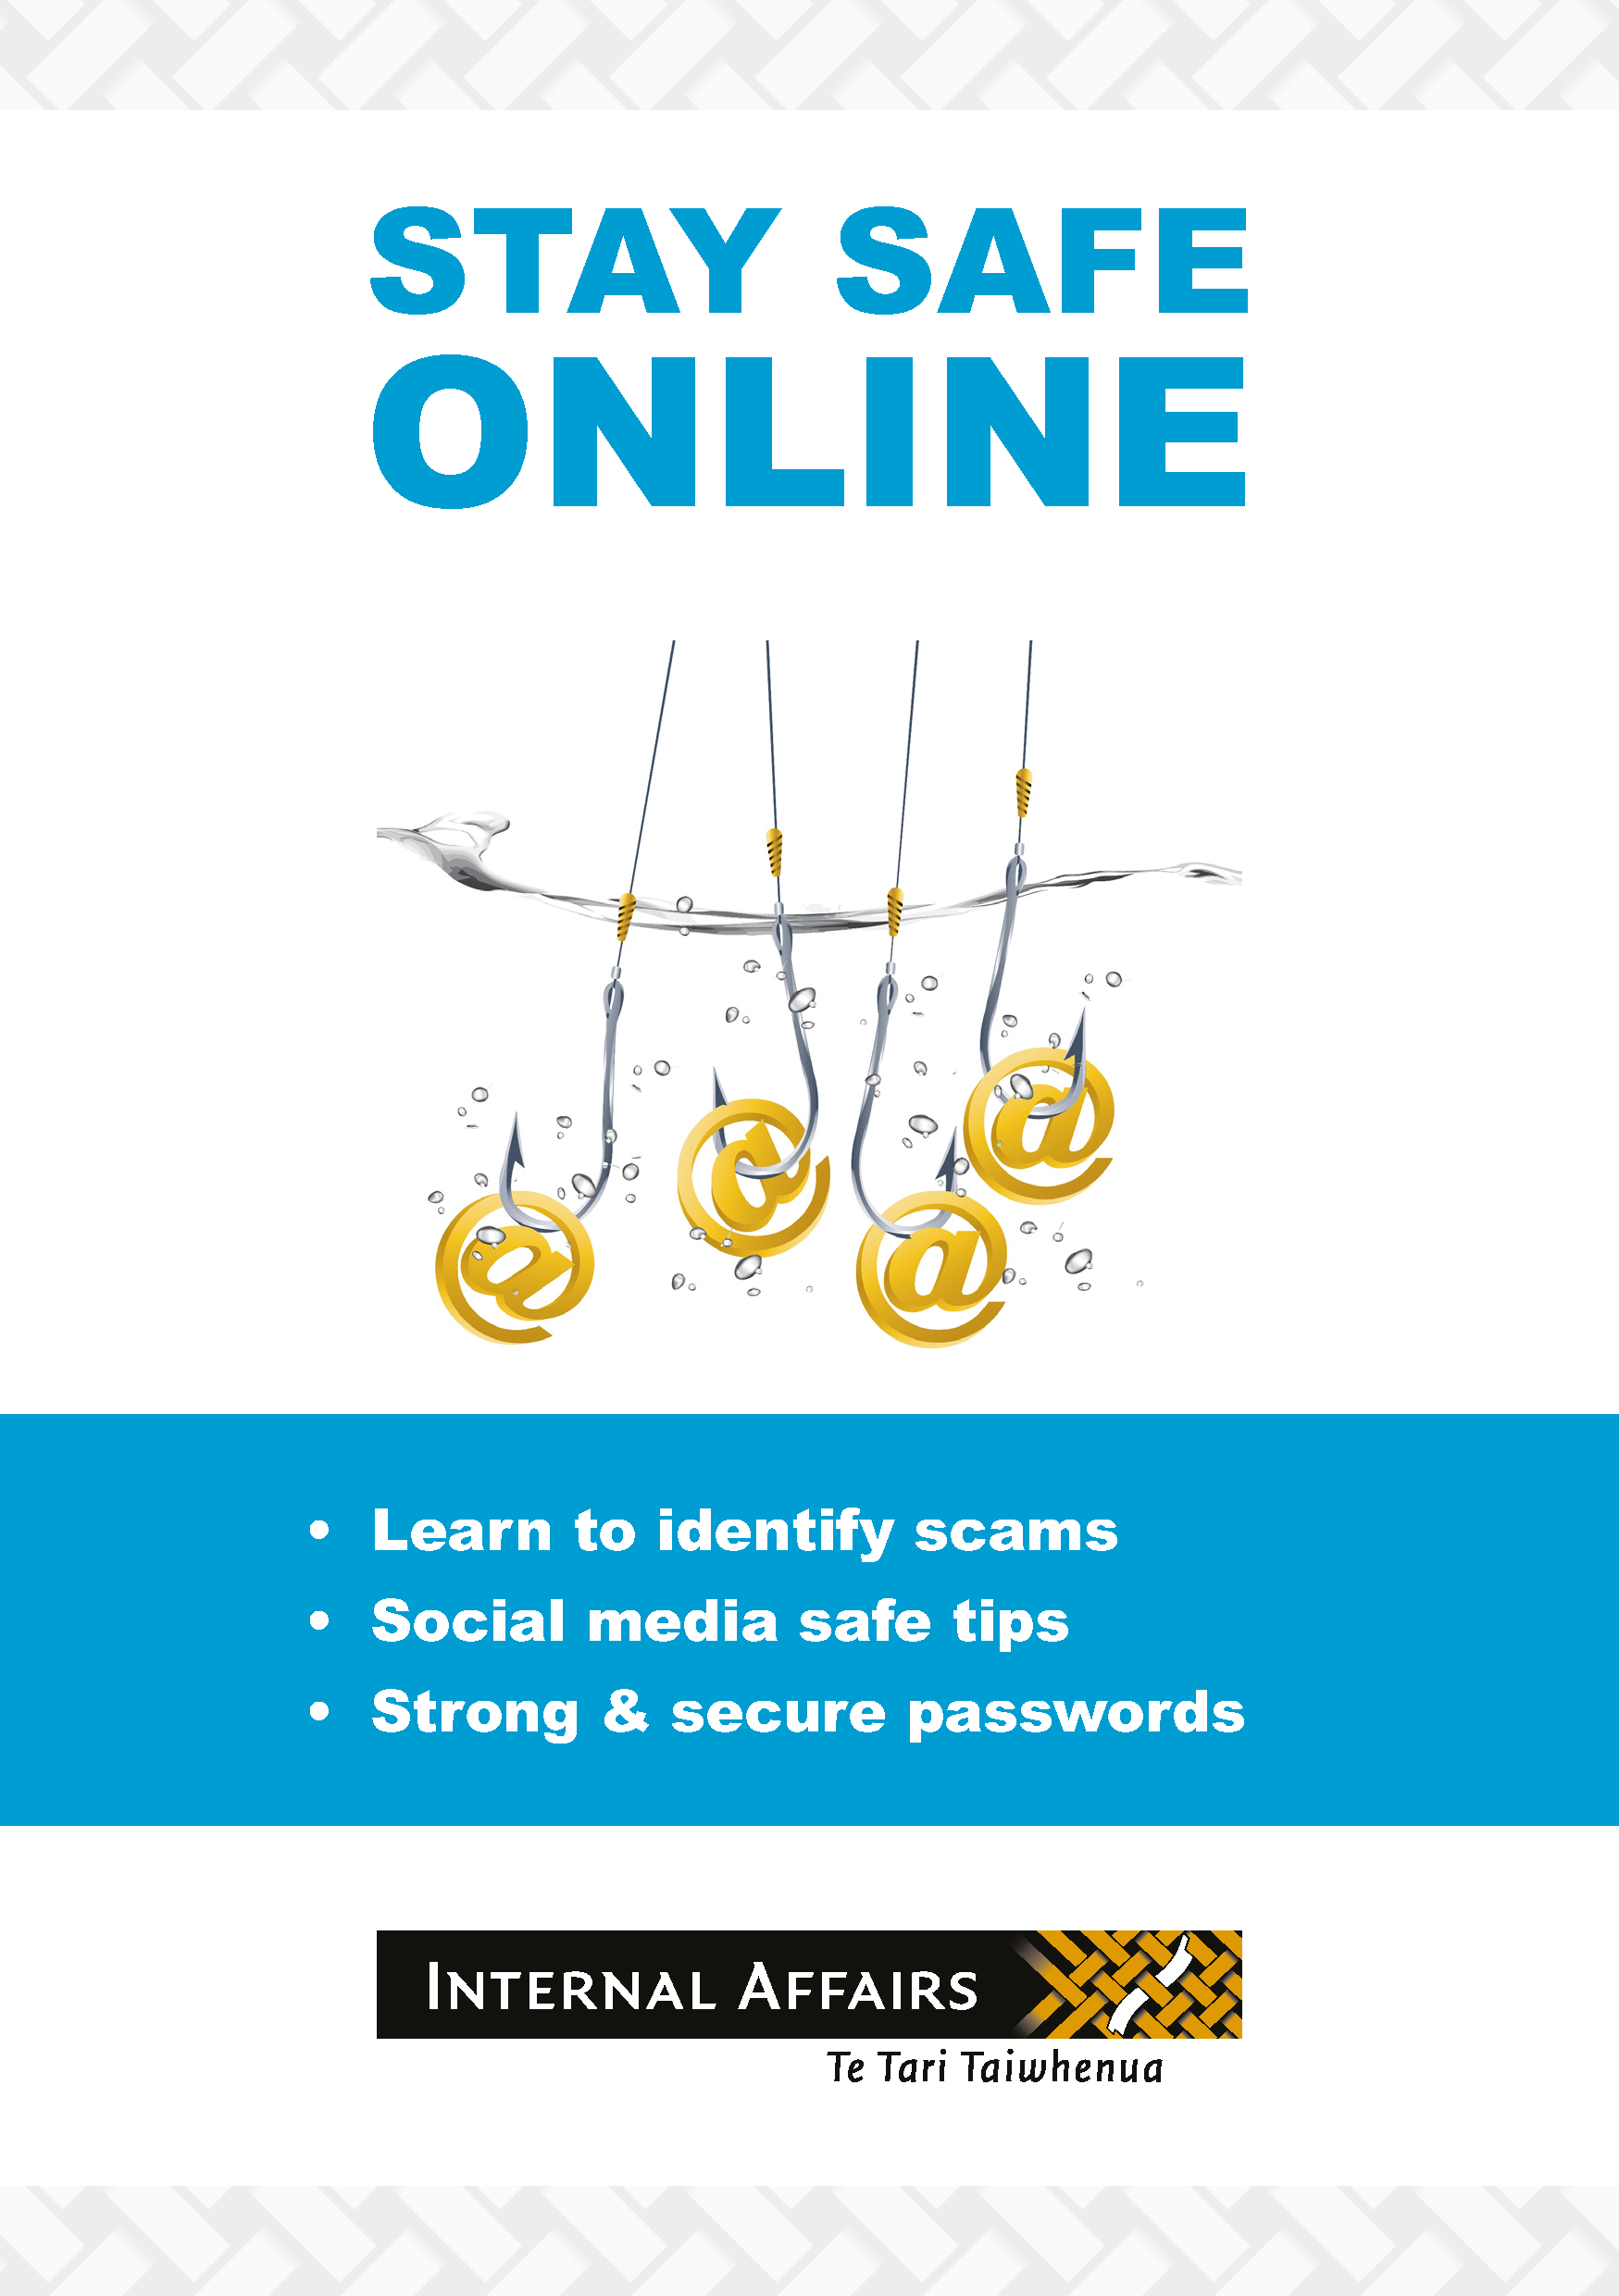 Thumbnail image of the 'Stay safe online' booklet